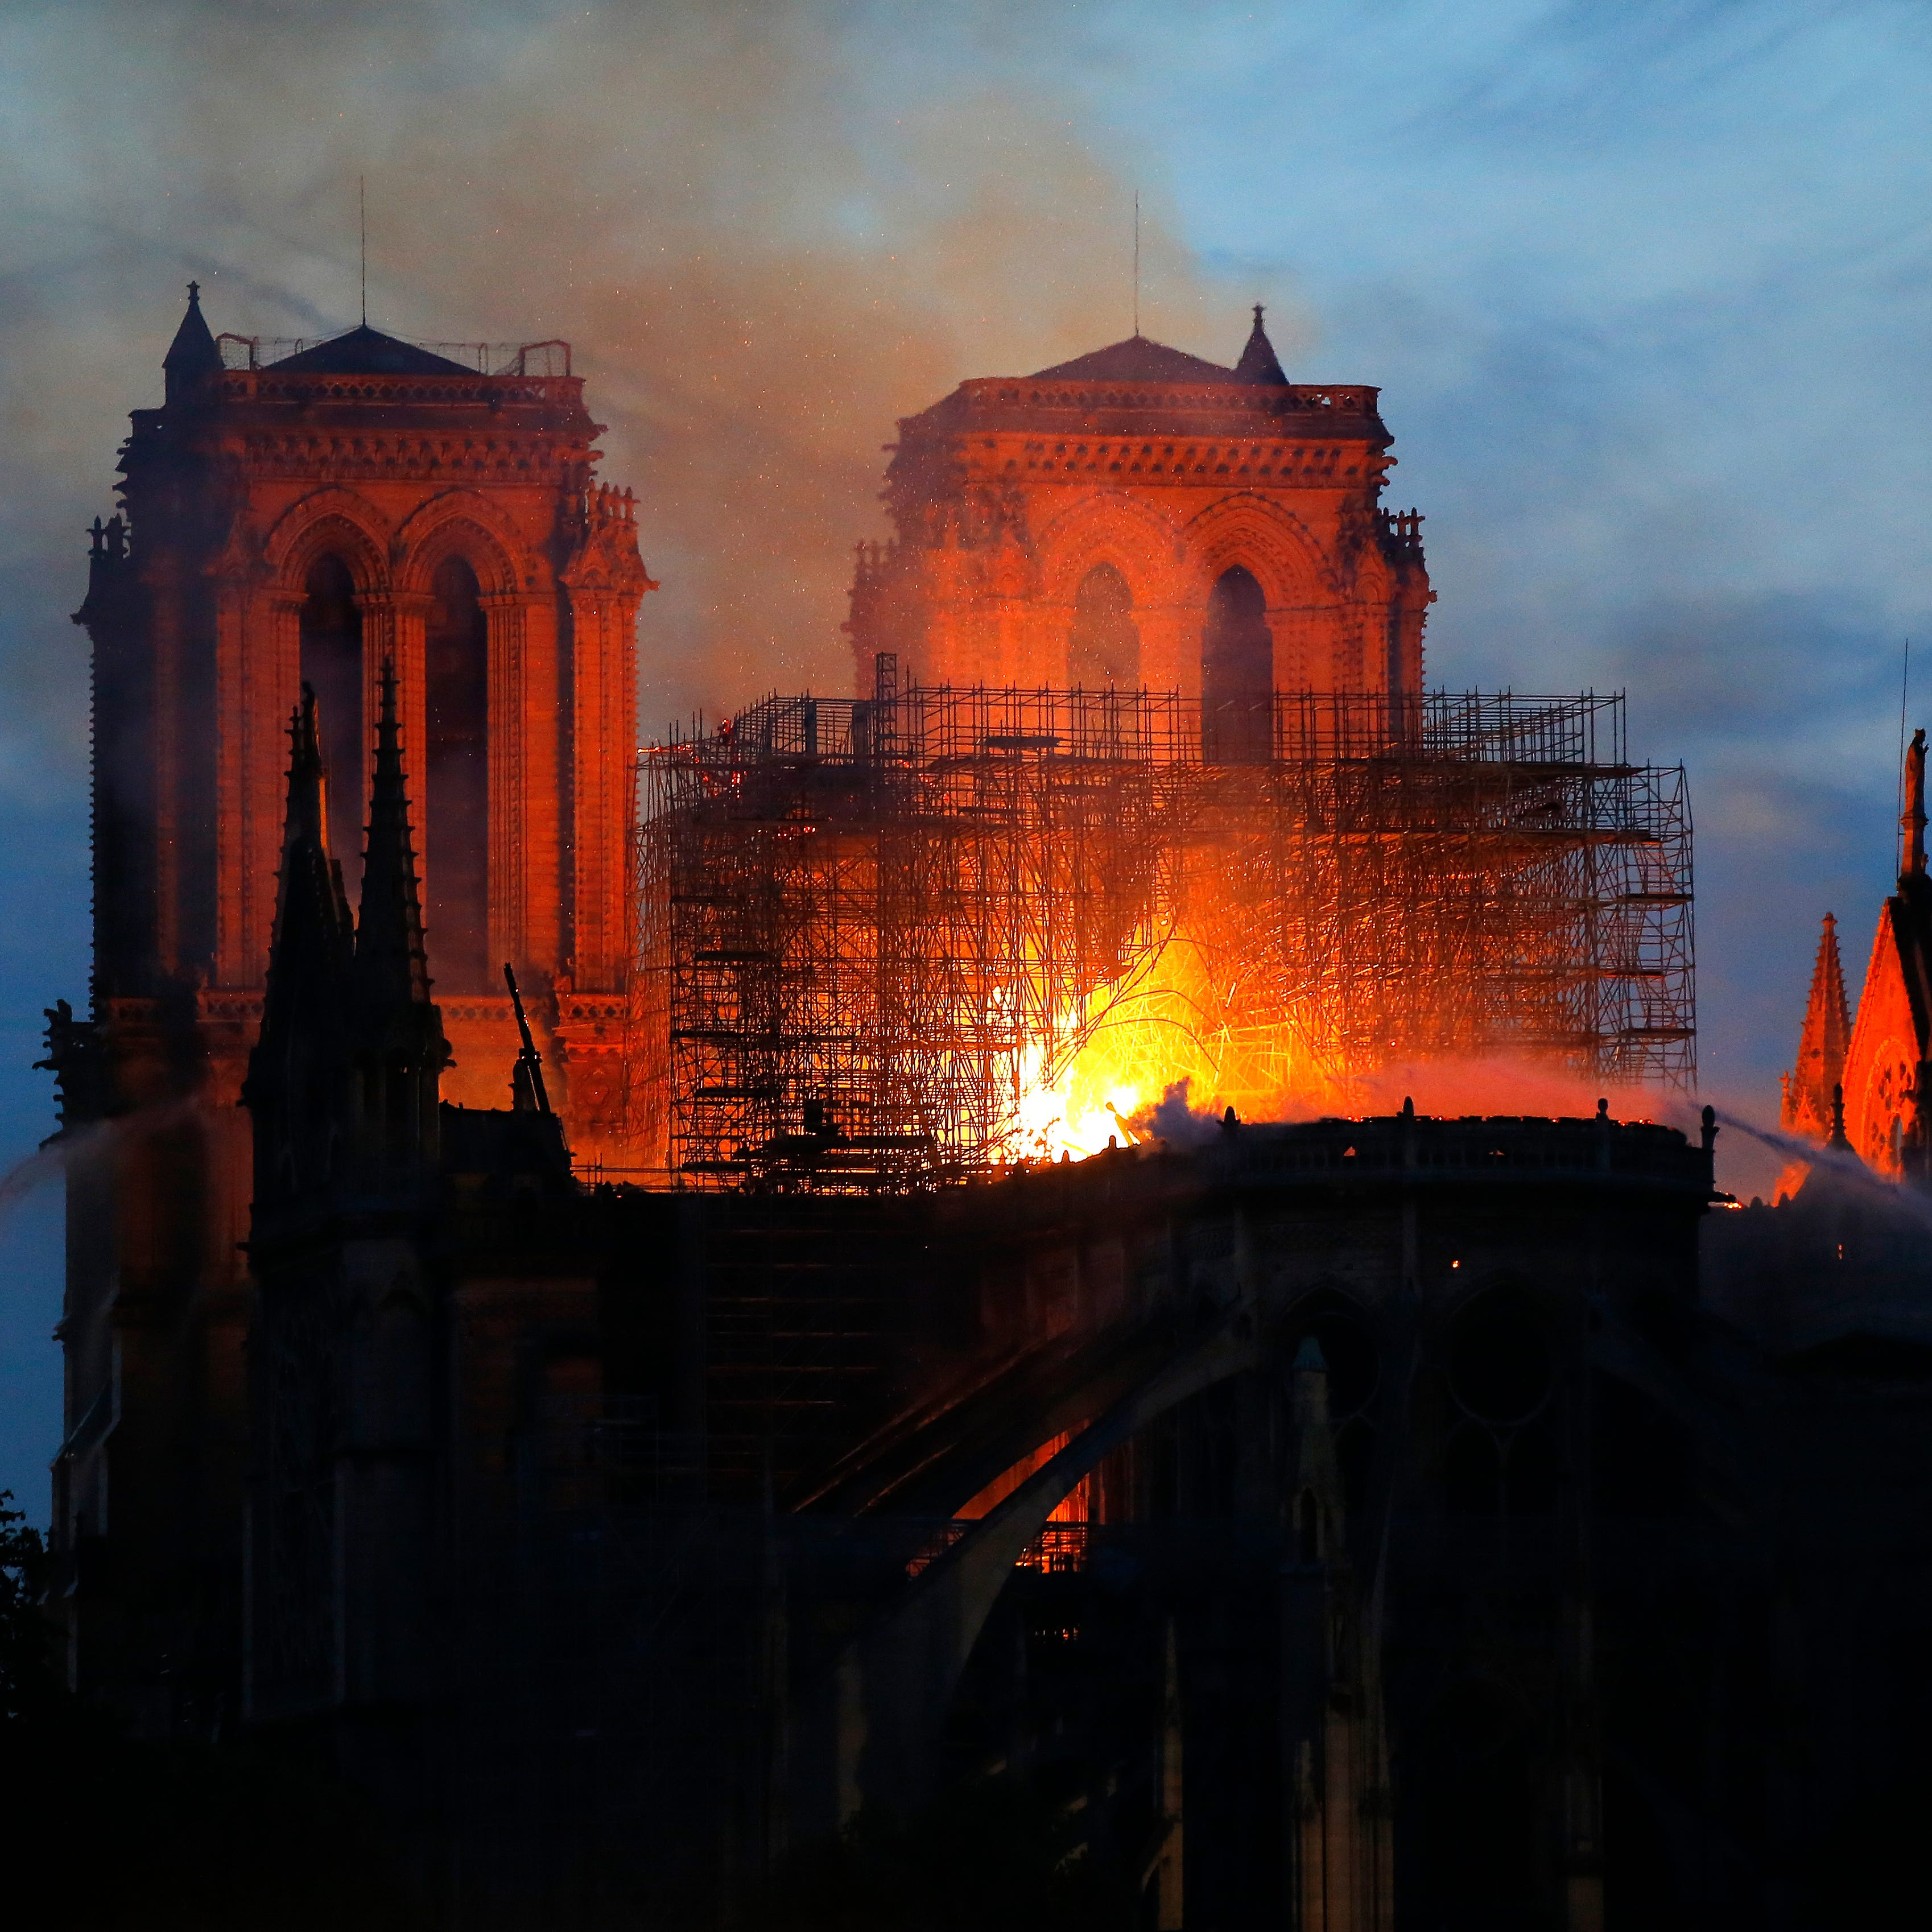 Notre Dame Cathedral's spire collapses in blaze, but structure saved, chief says